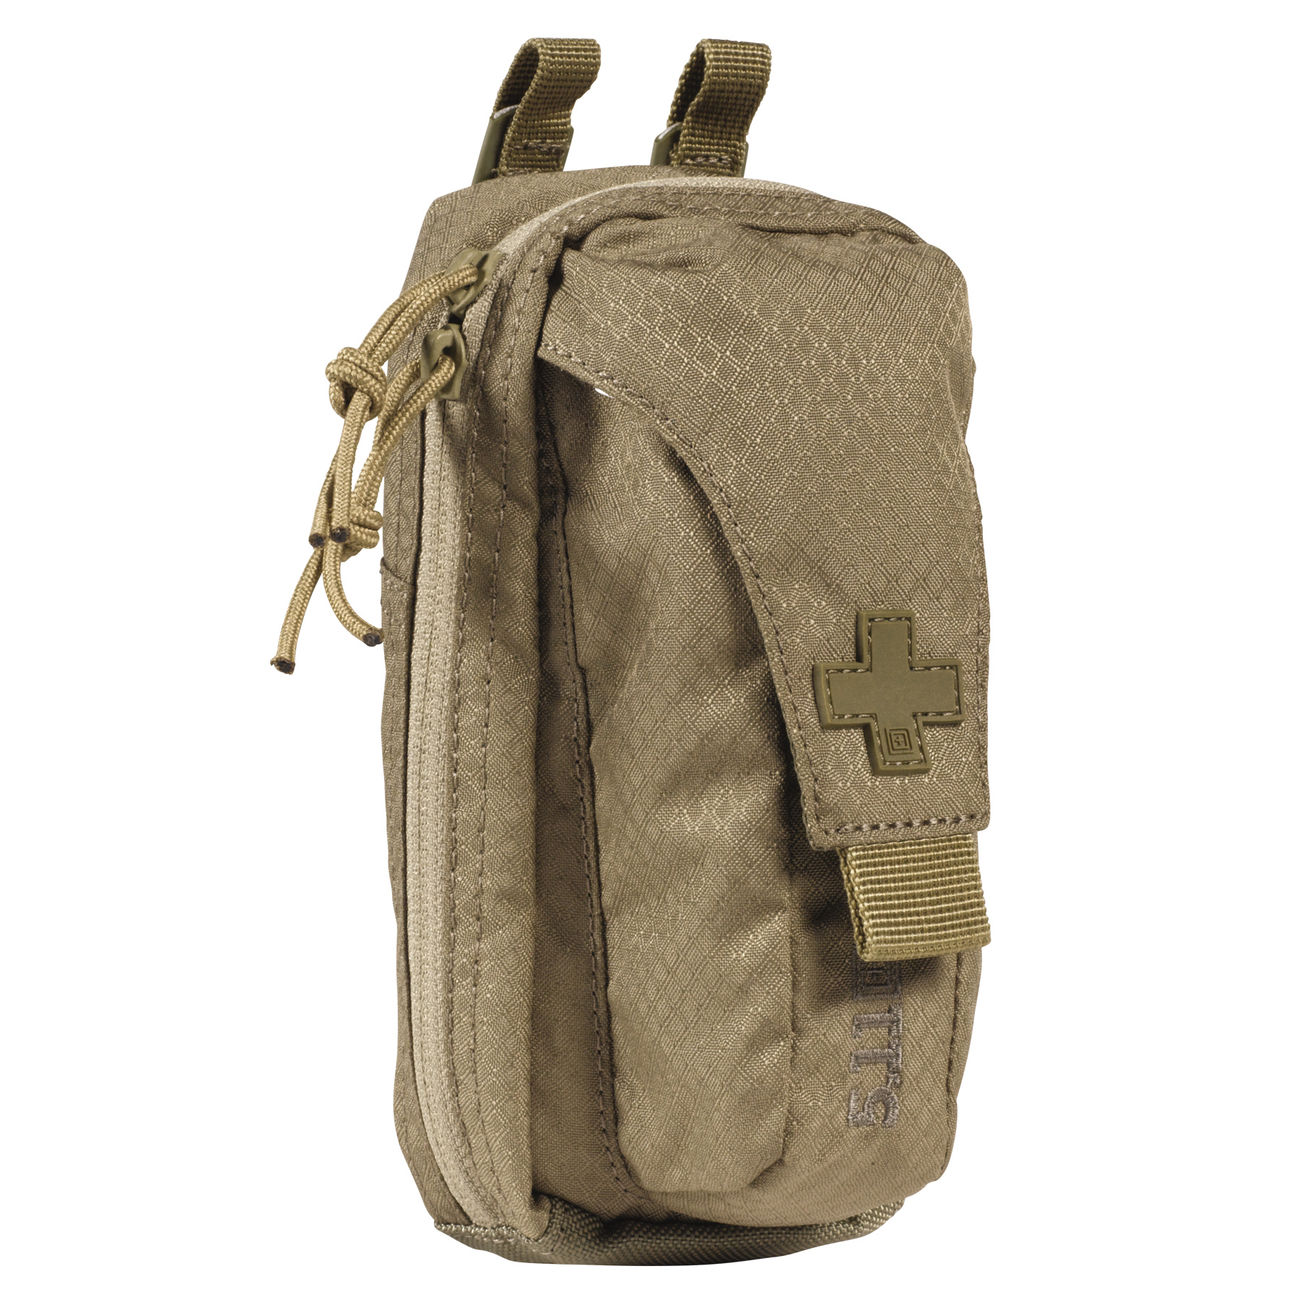 5.11 Ignitor Med Pouch sandstone 1